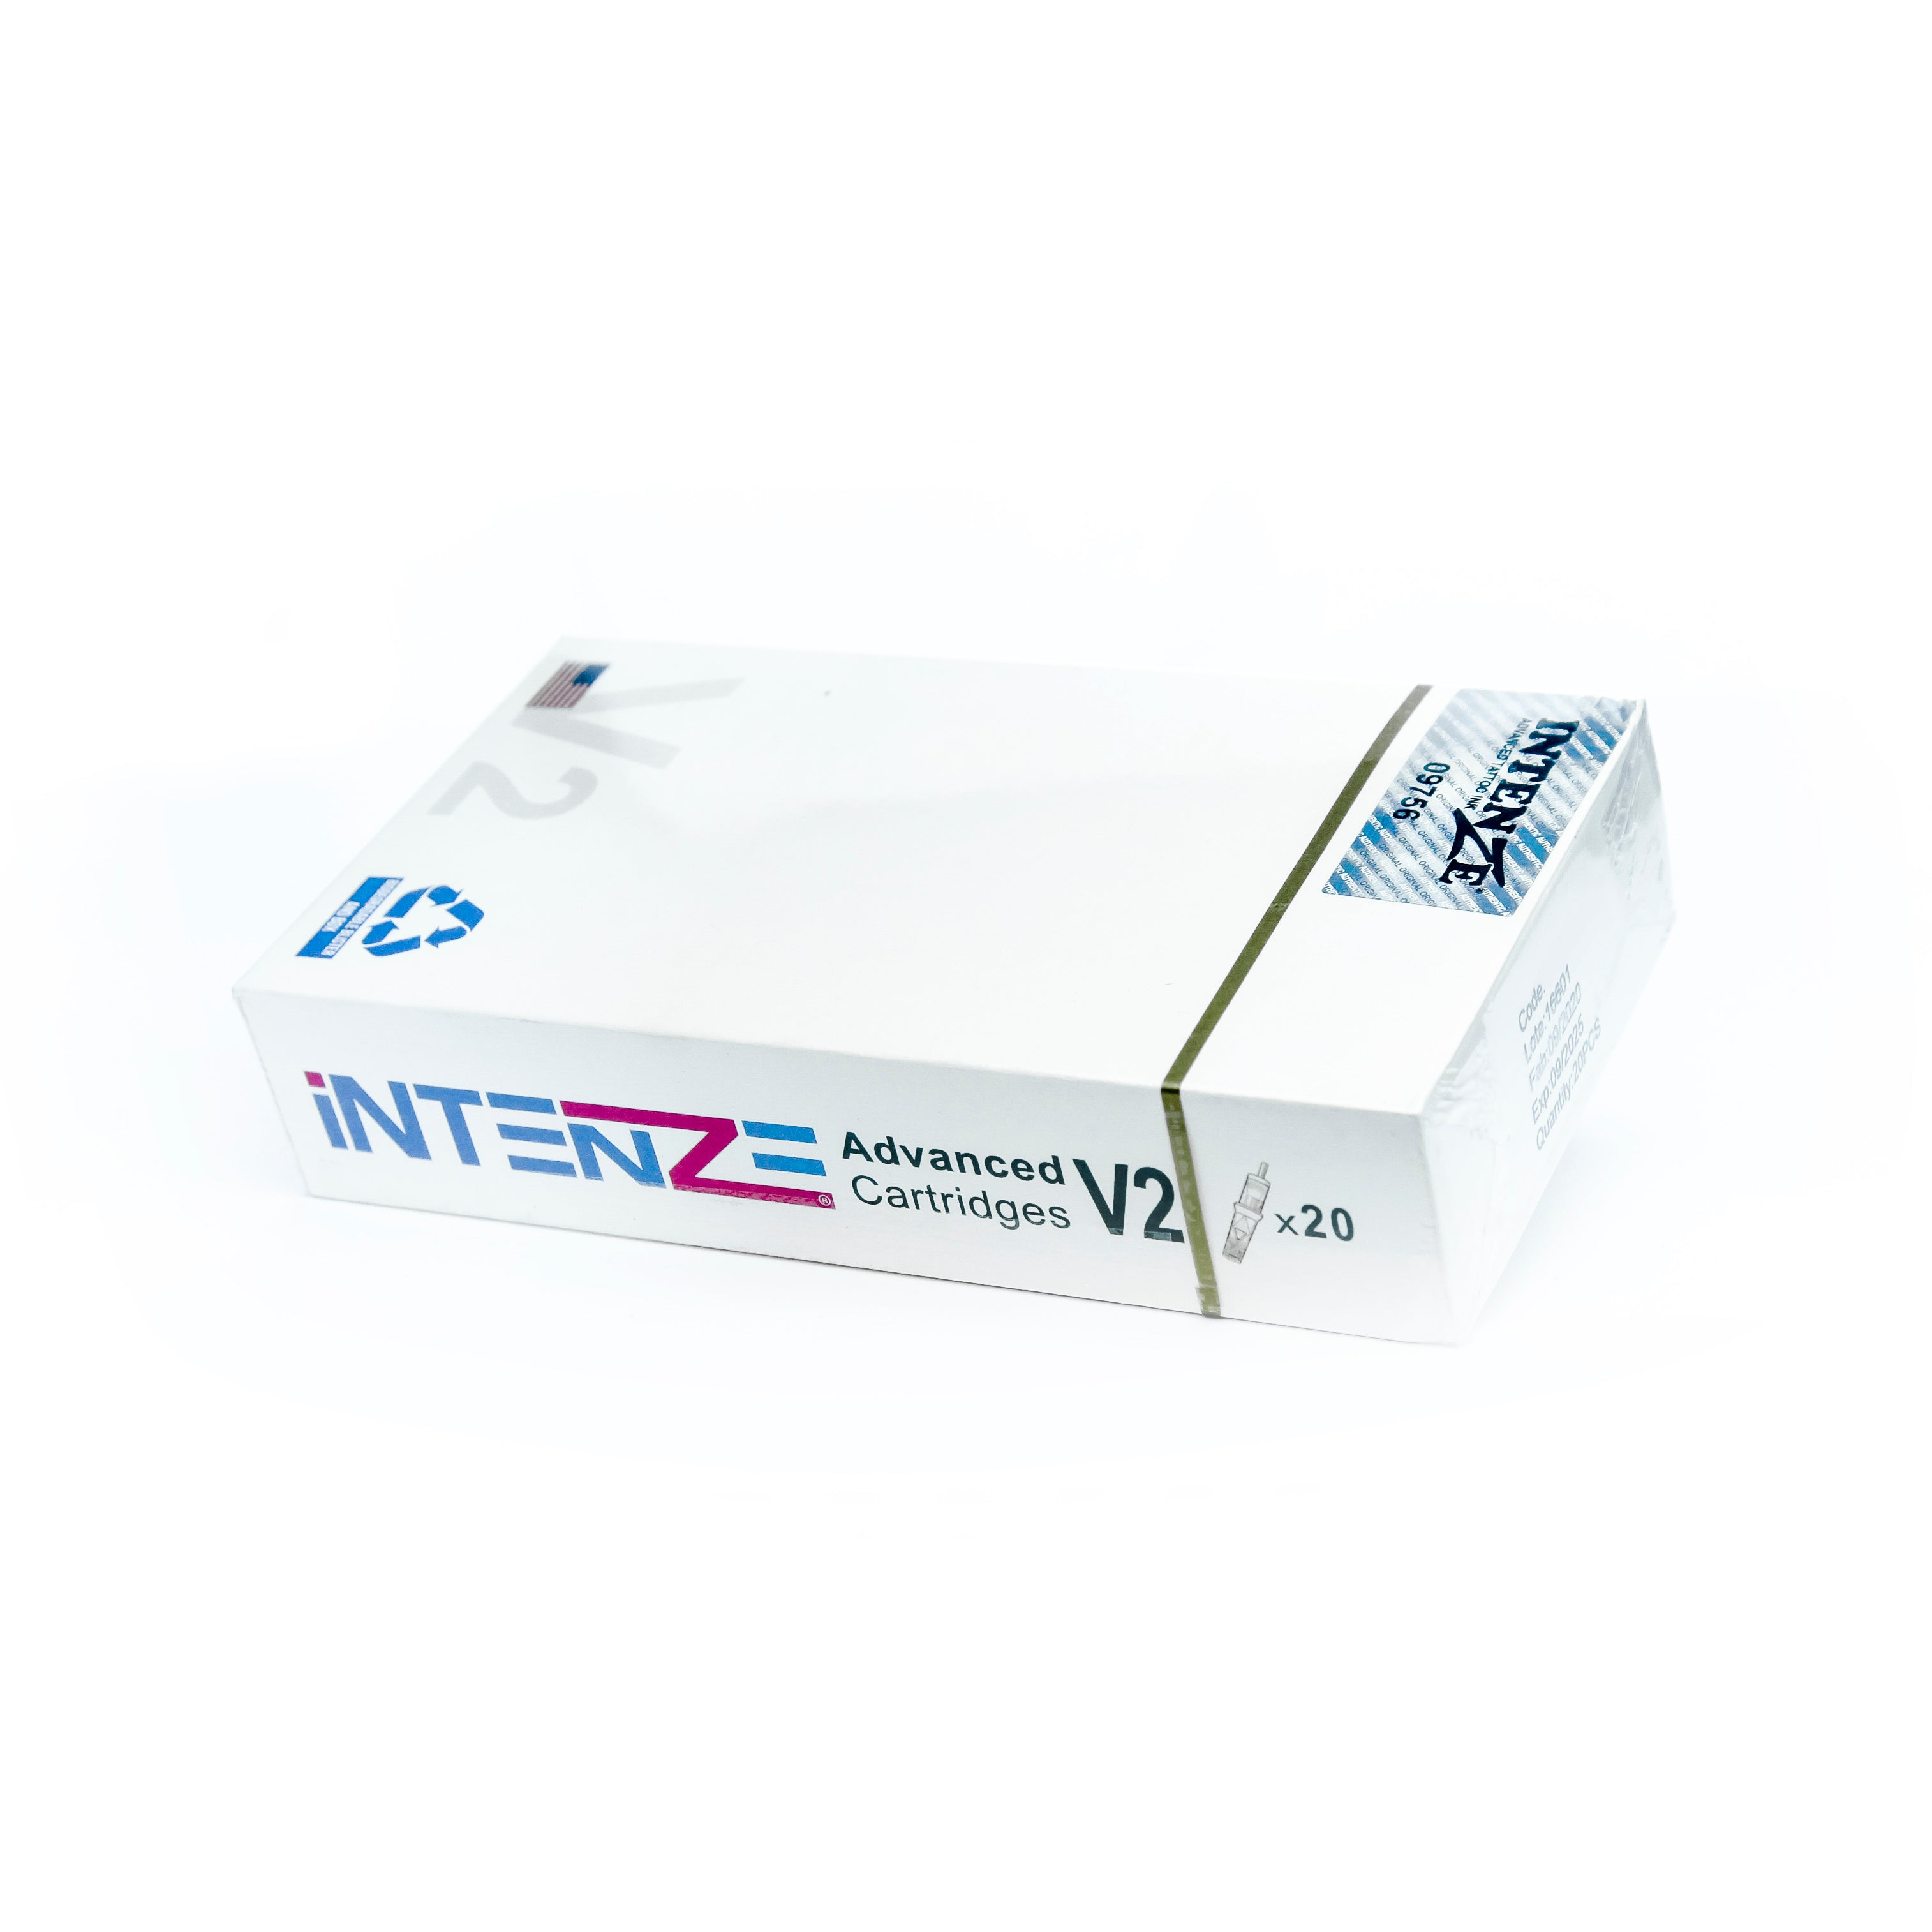 1207RL - 7 Round Liner - INTENZE V2 Cartridges